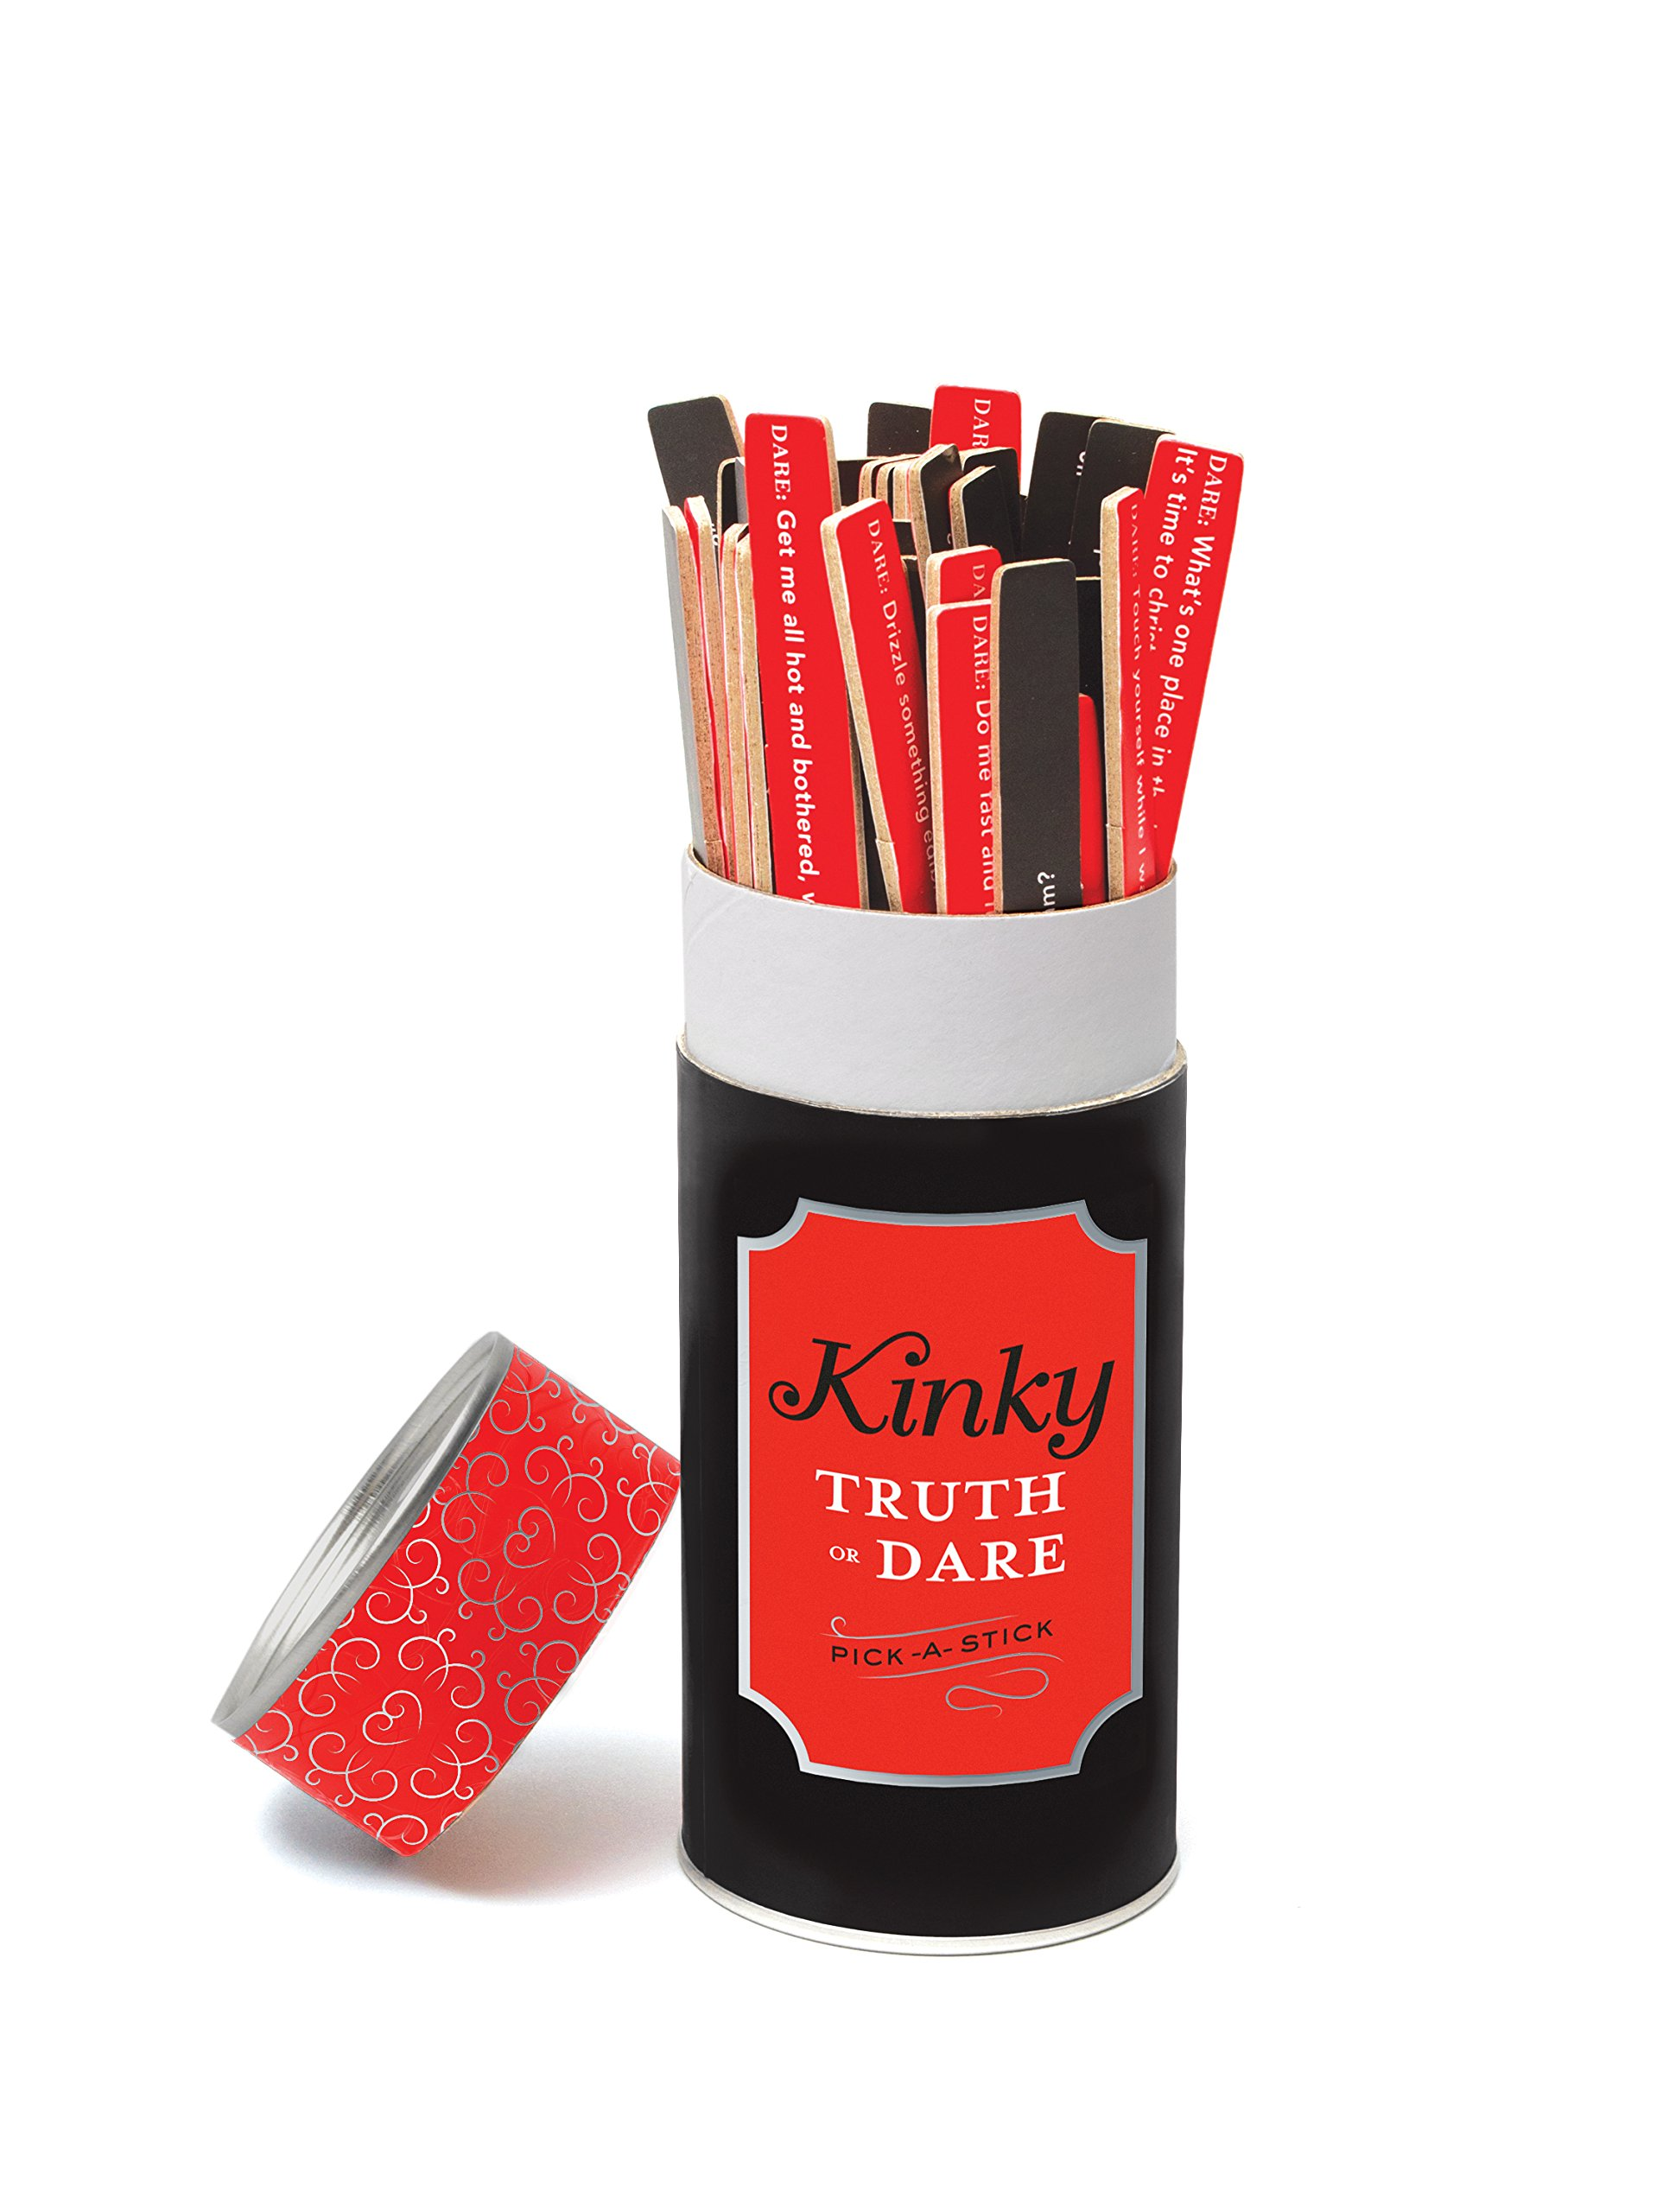 Kinky Truth Dare Pick Stick product image